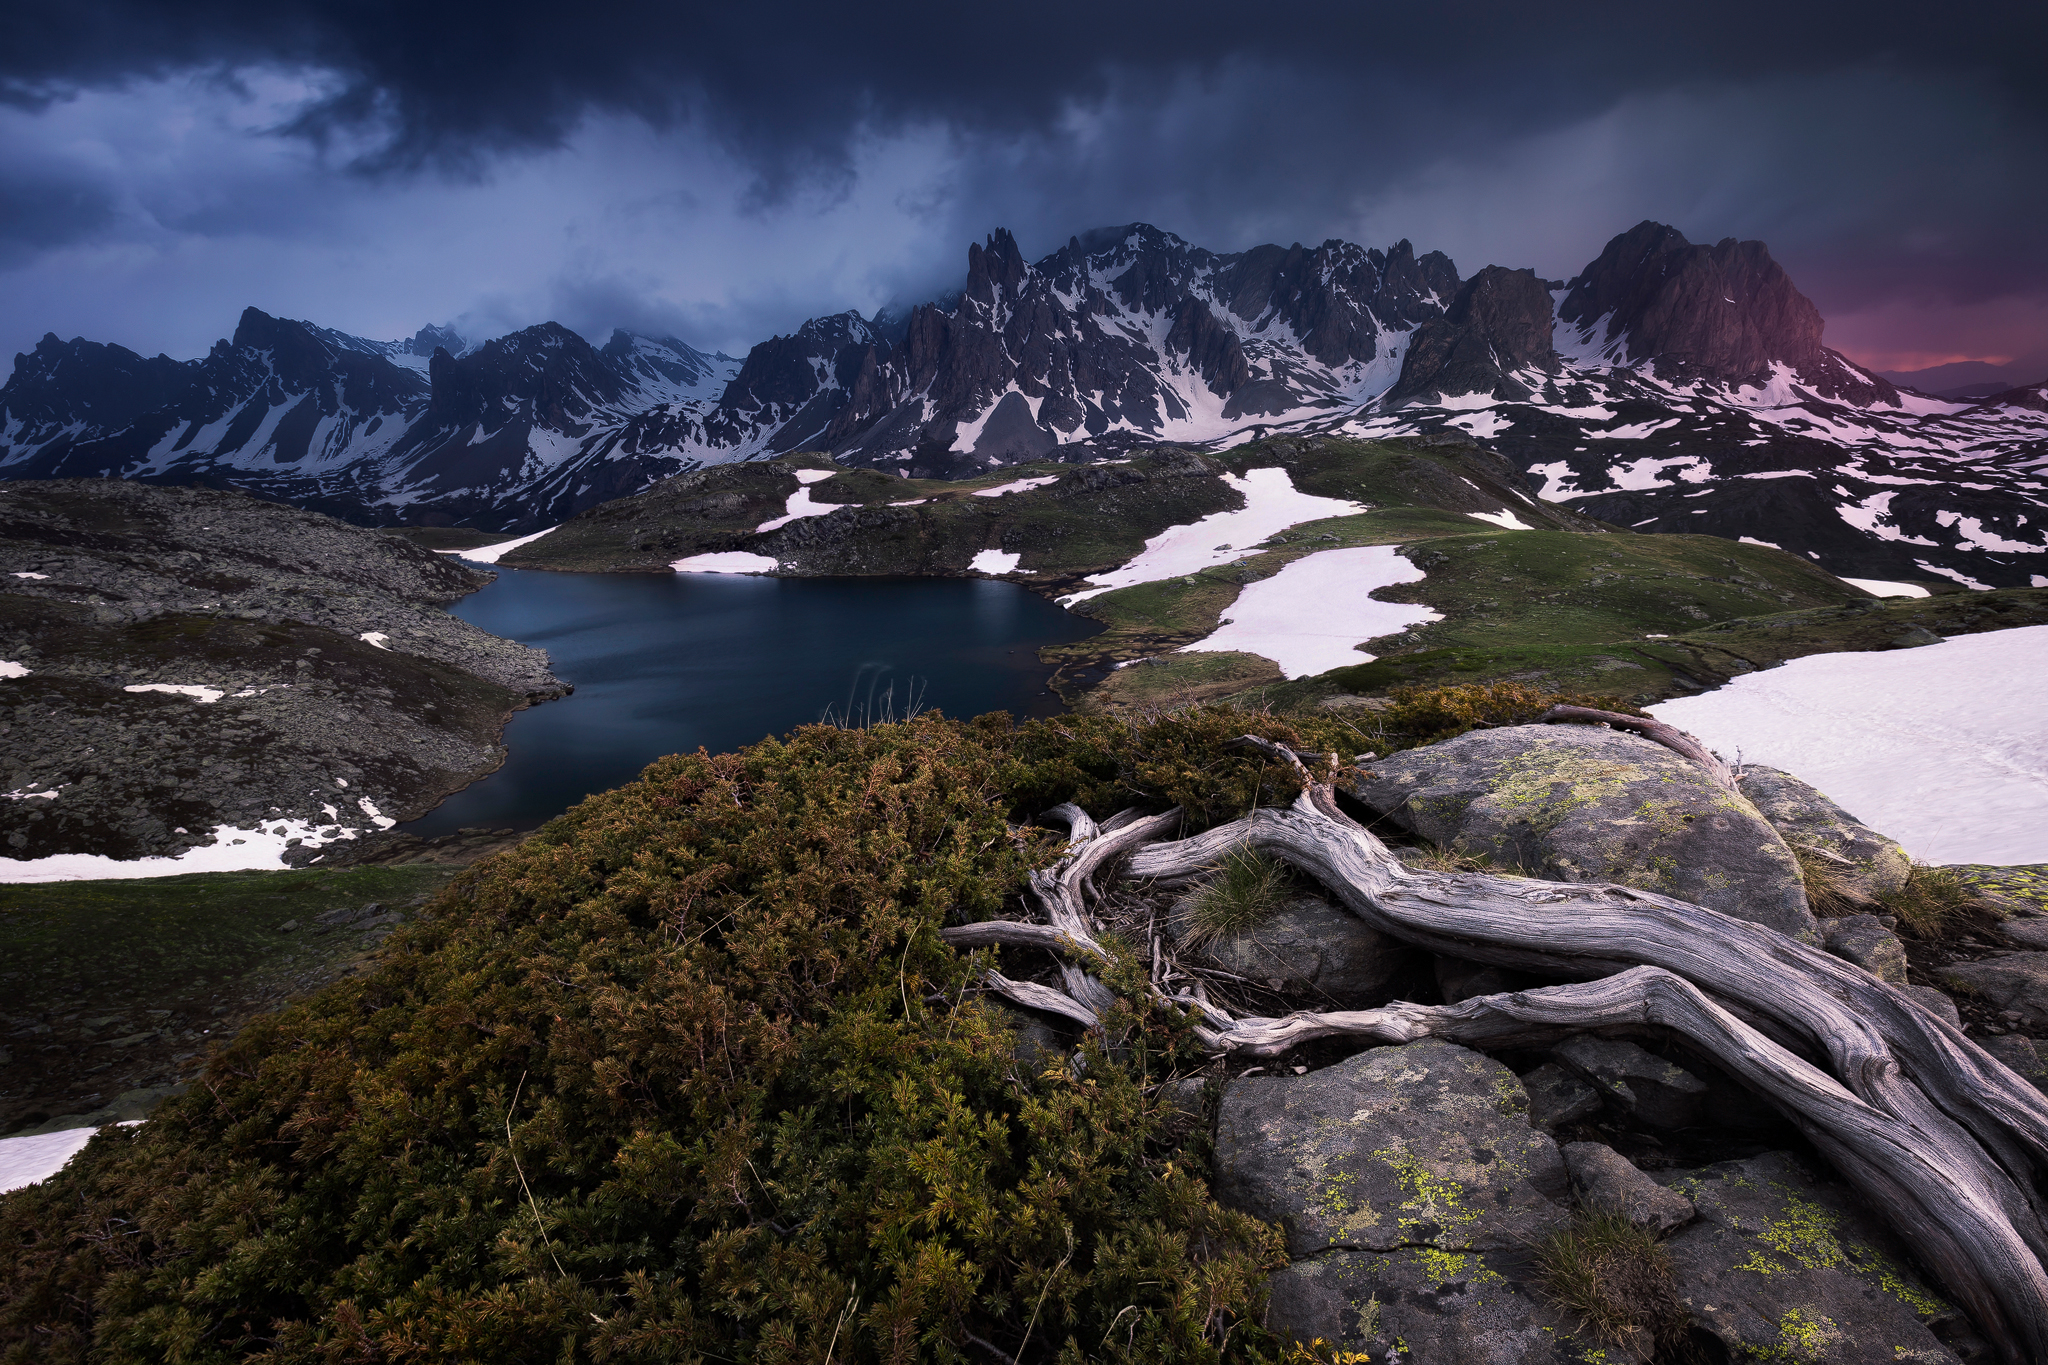 How to Use Foreground to Add Depth in Landscape Photography